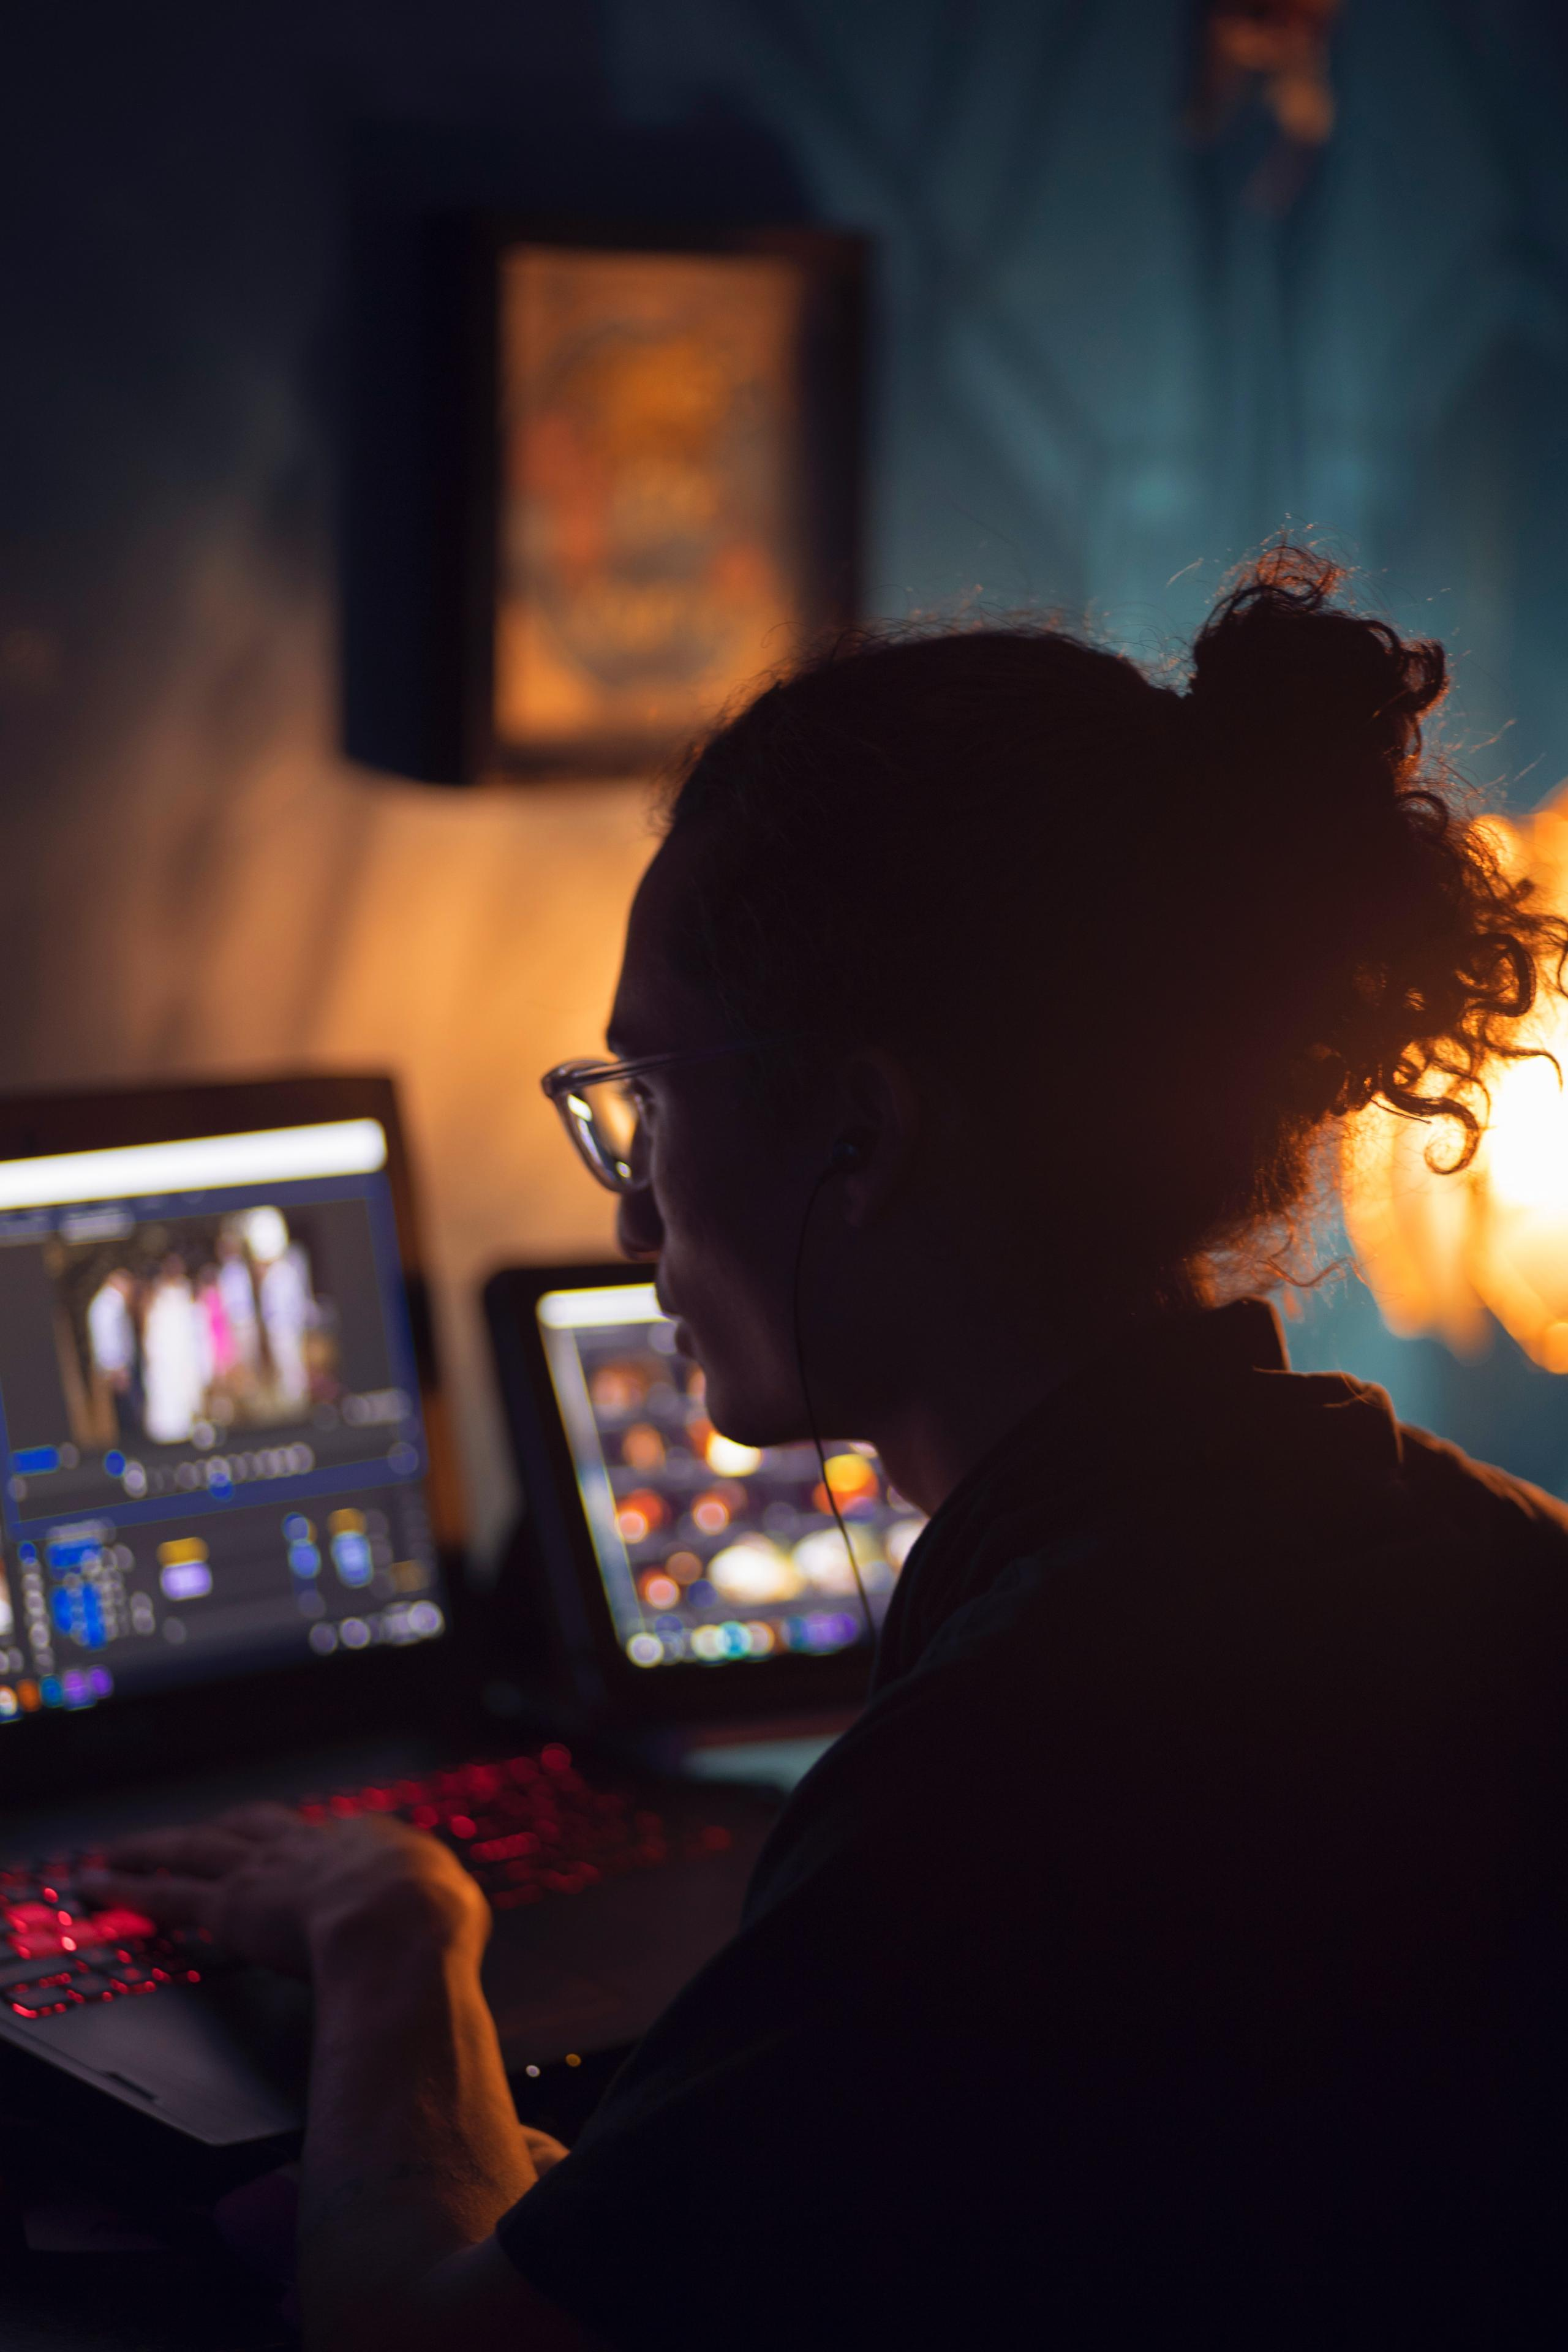 A person wearing glasses, with curly hair tied back, sits in front of two computers with colorful images on their screens.